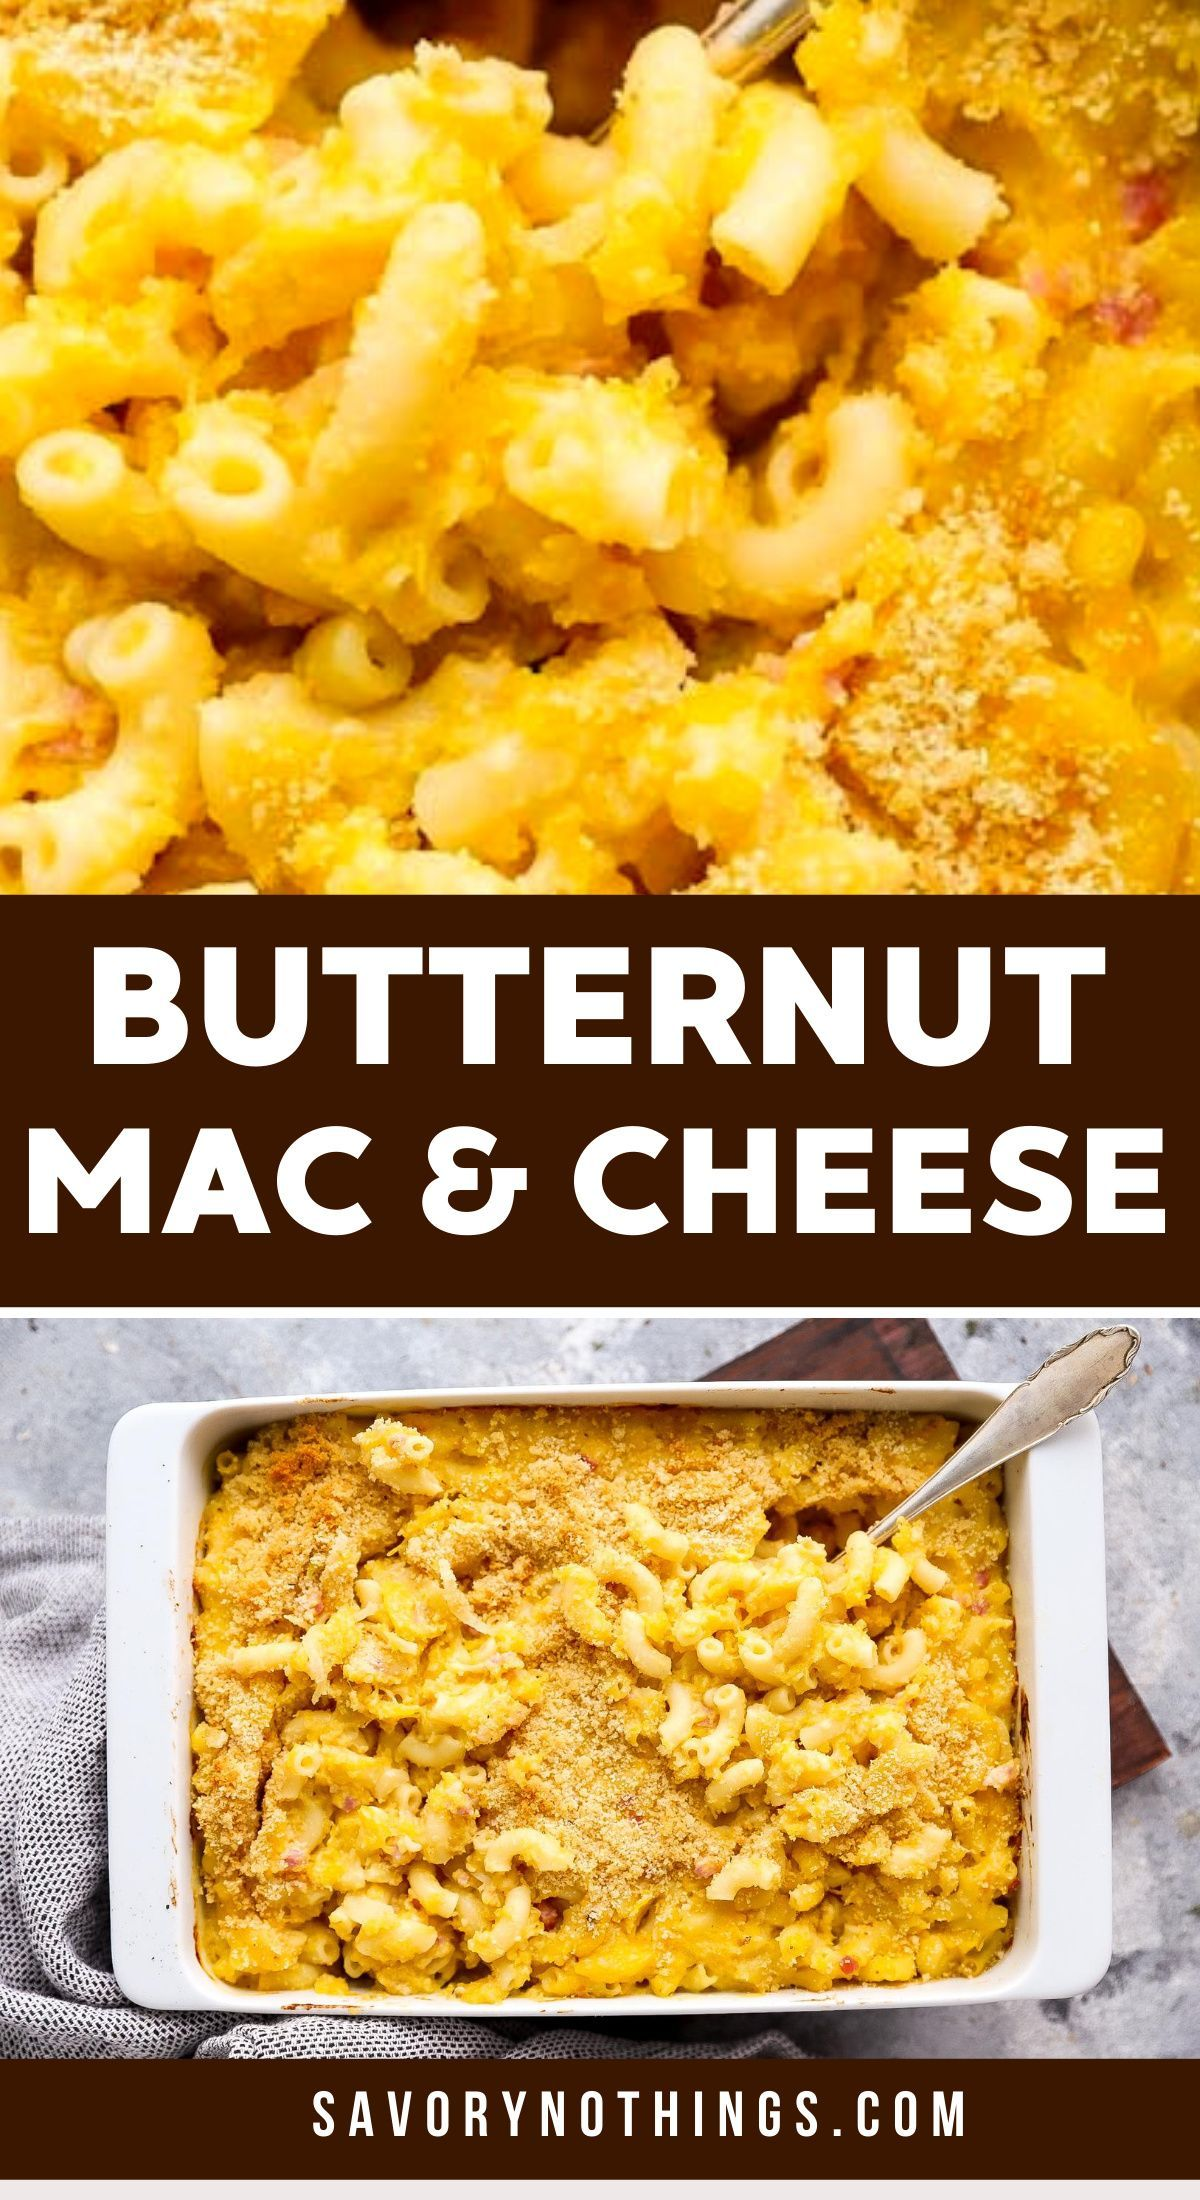 Baked Butternut Squash Mac And Cheese With Bacon Video In 2020 Butternut Squash Mac And Cheese Baked Butternut Squash Recipes